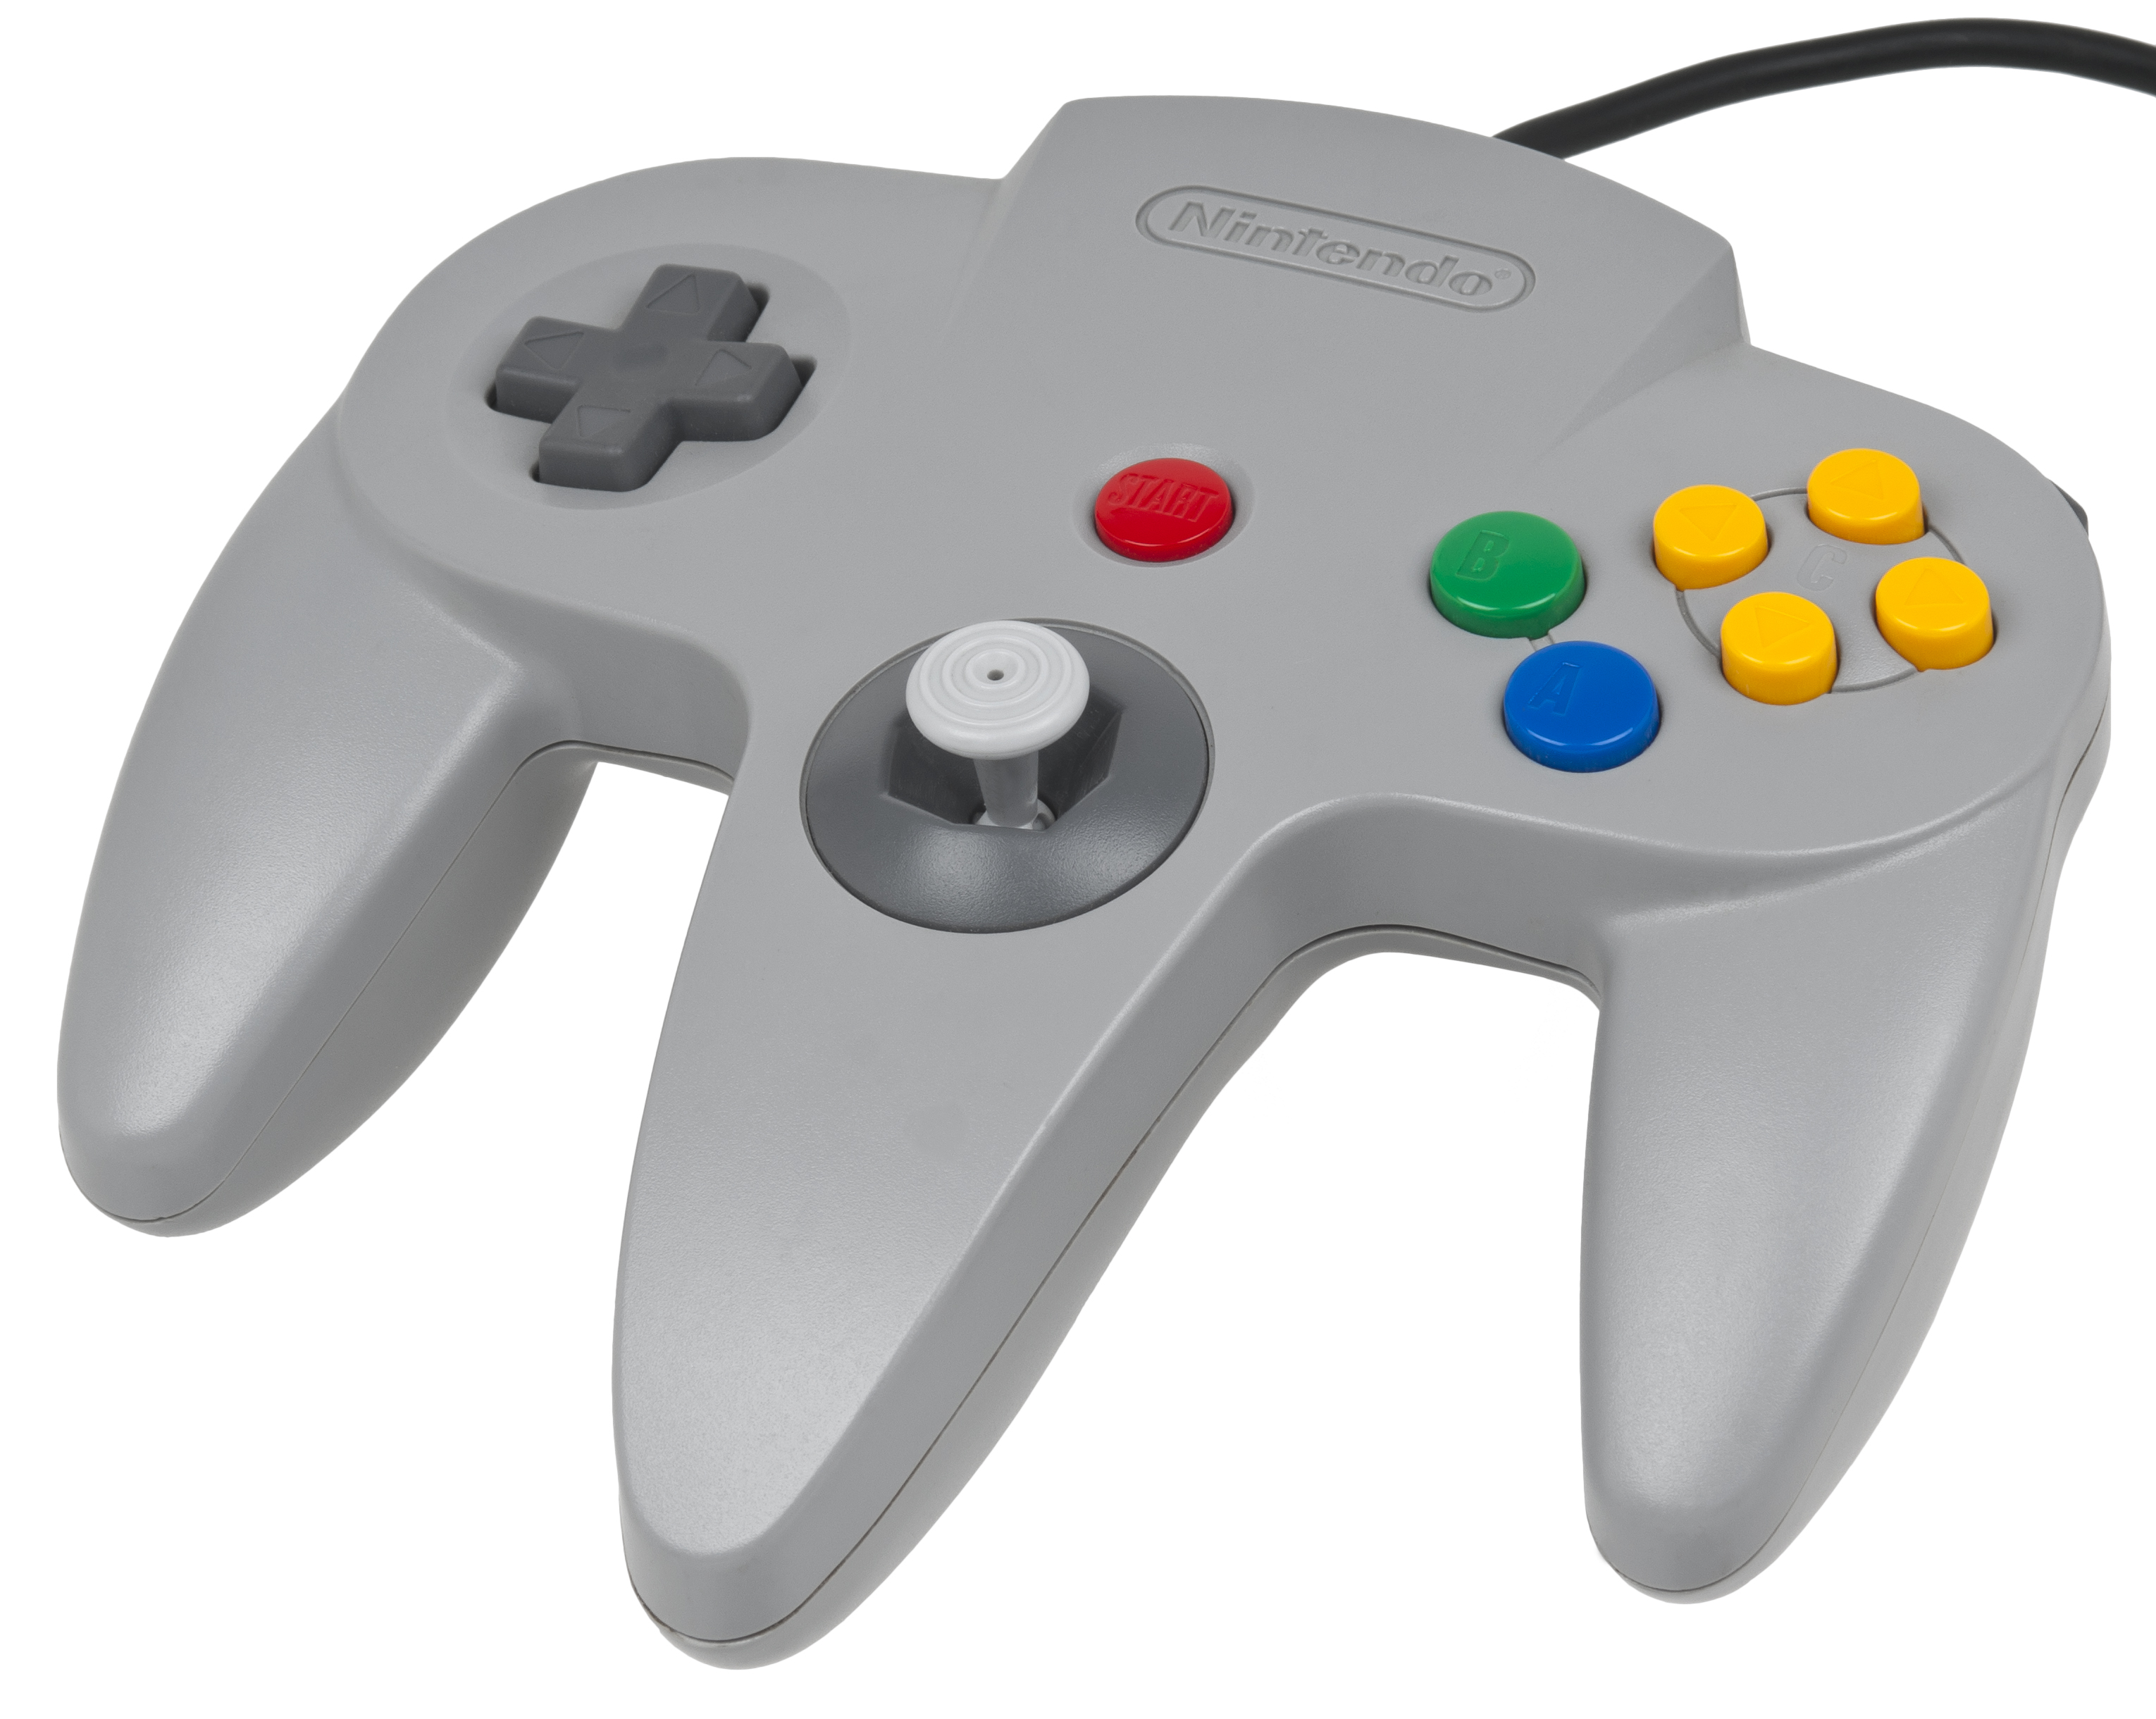 Image result for nintendo 64 controller